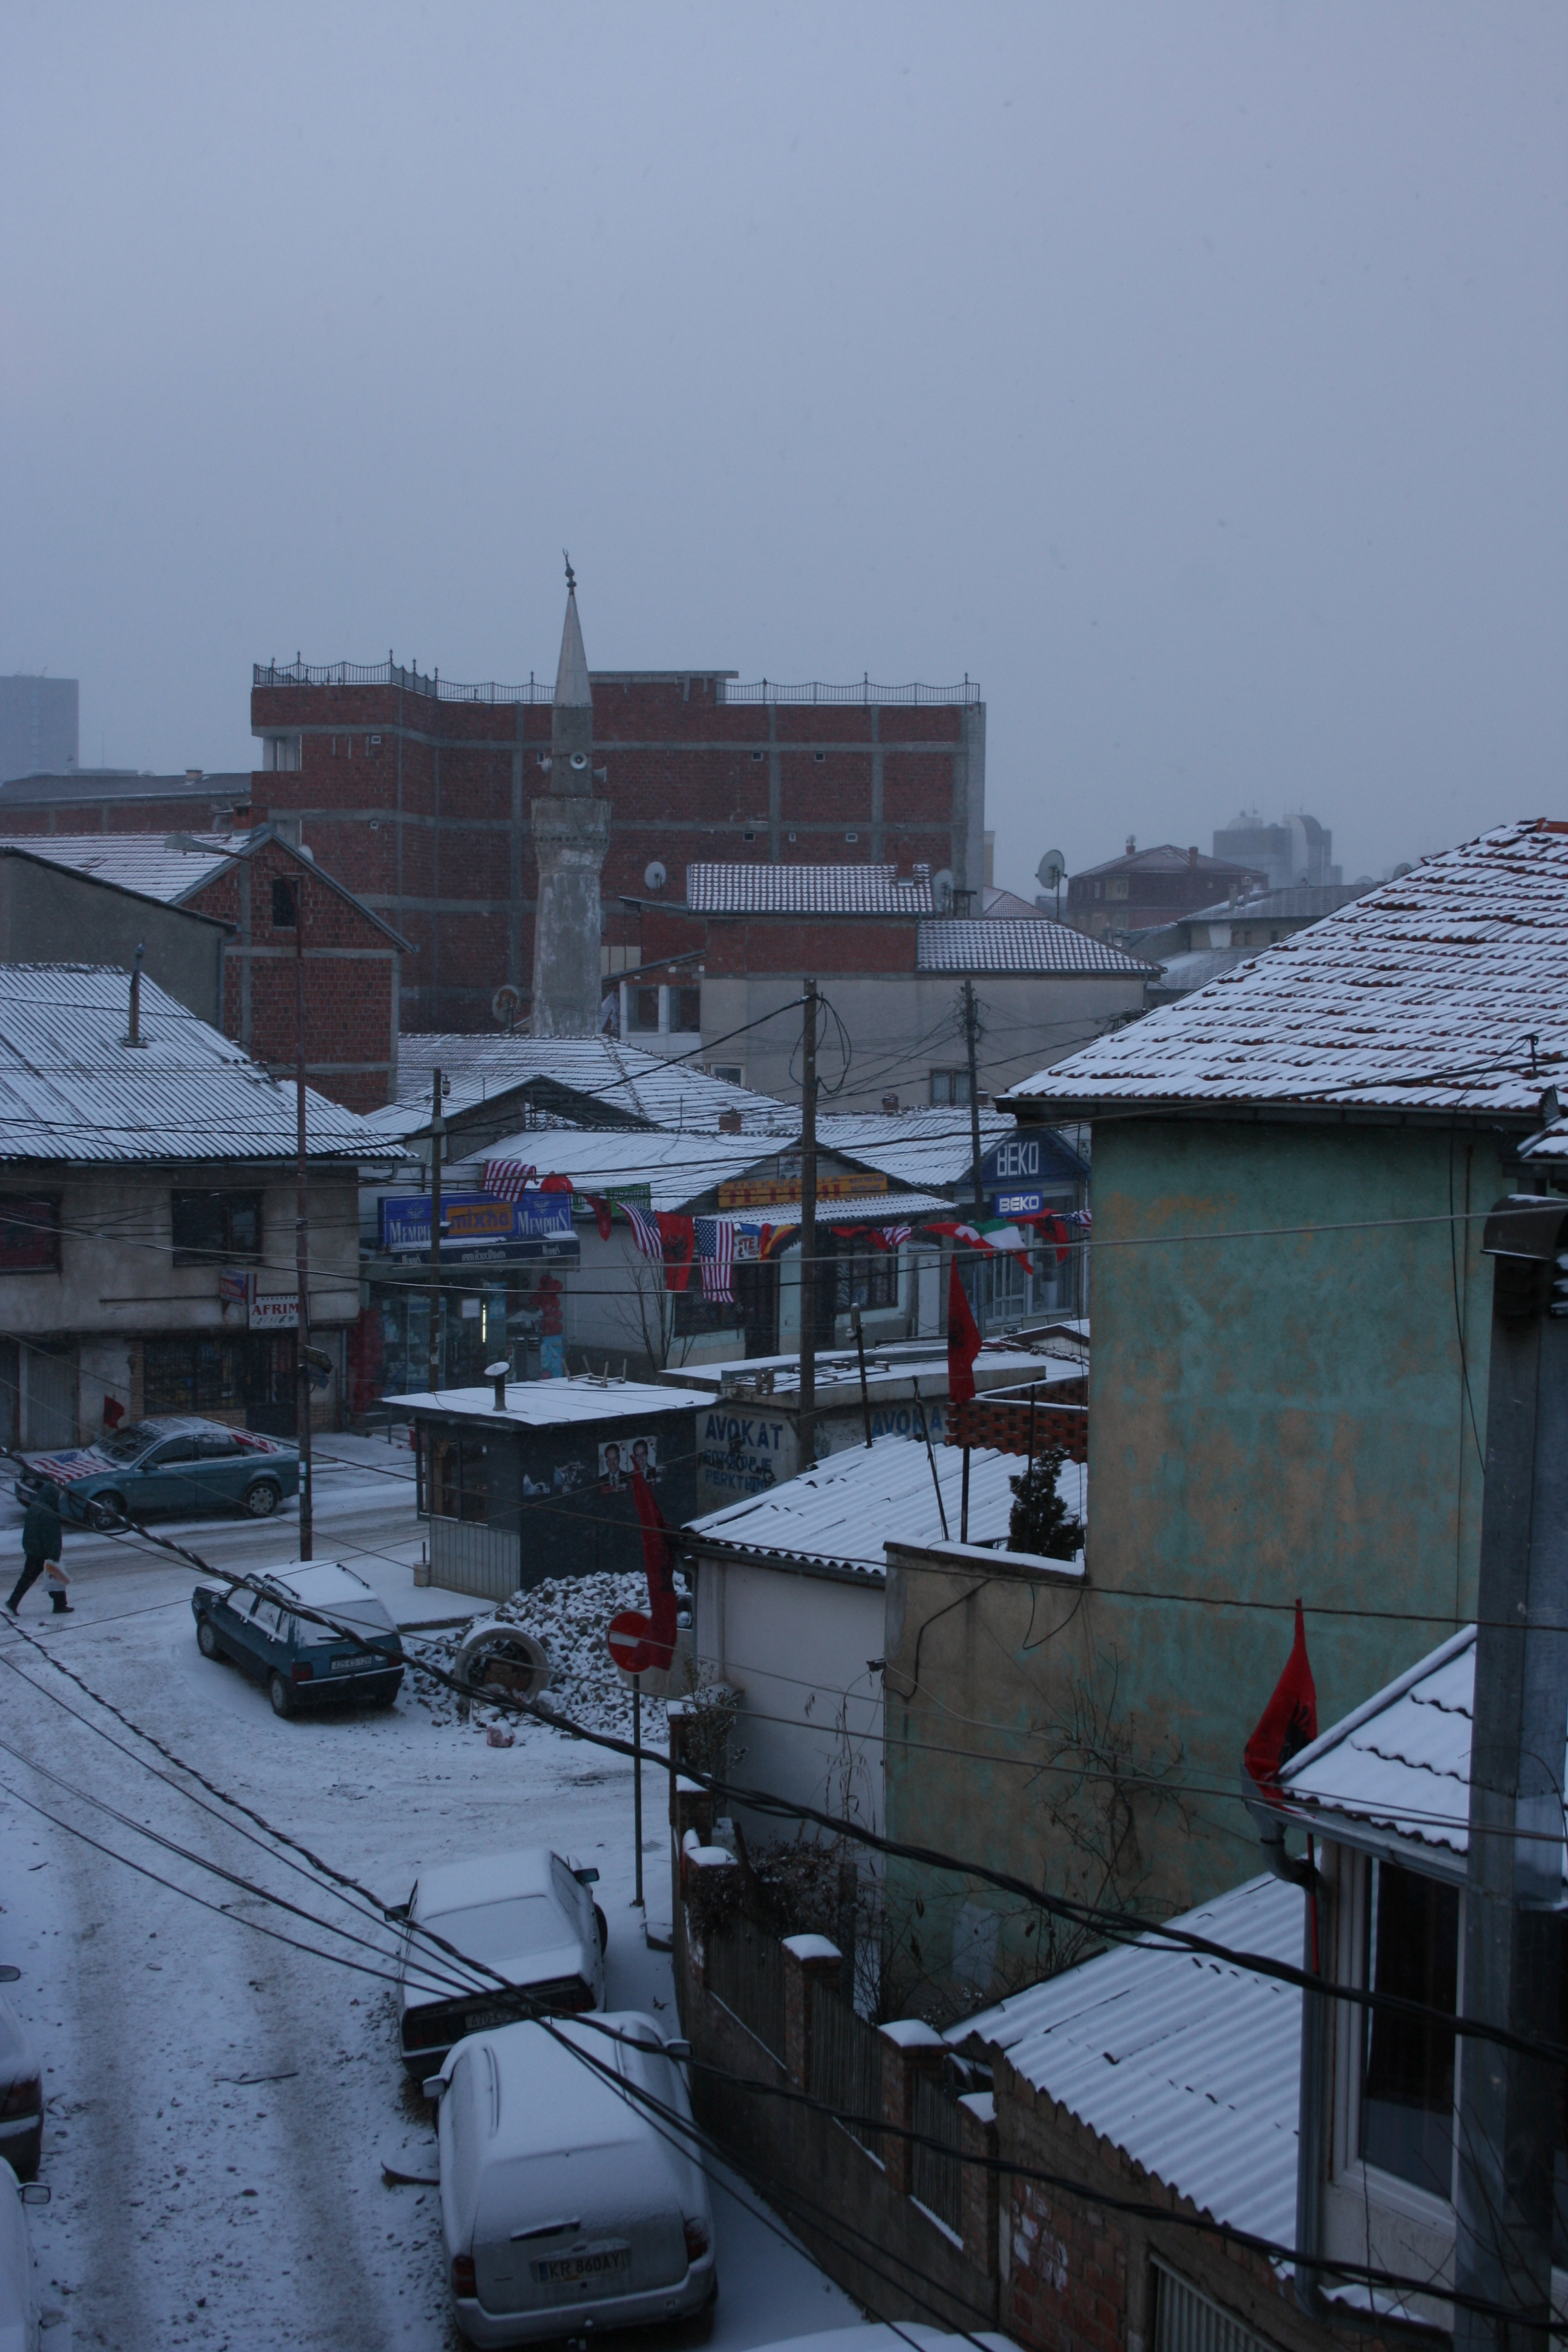 View from my hotel room, February 17, 2008